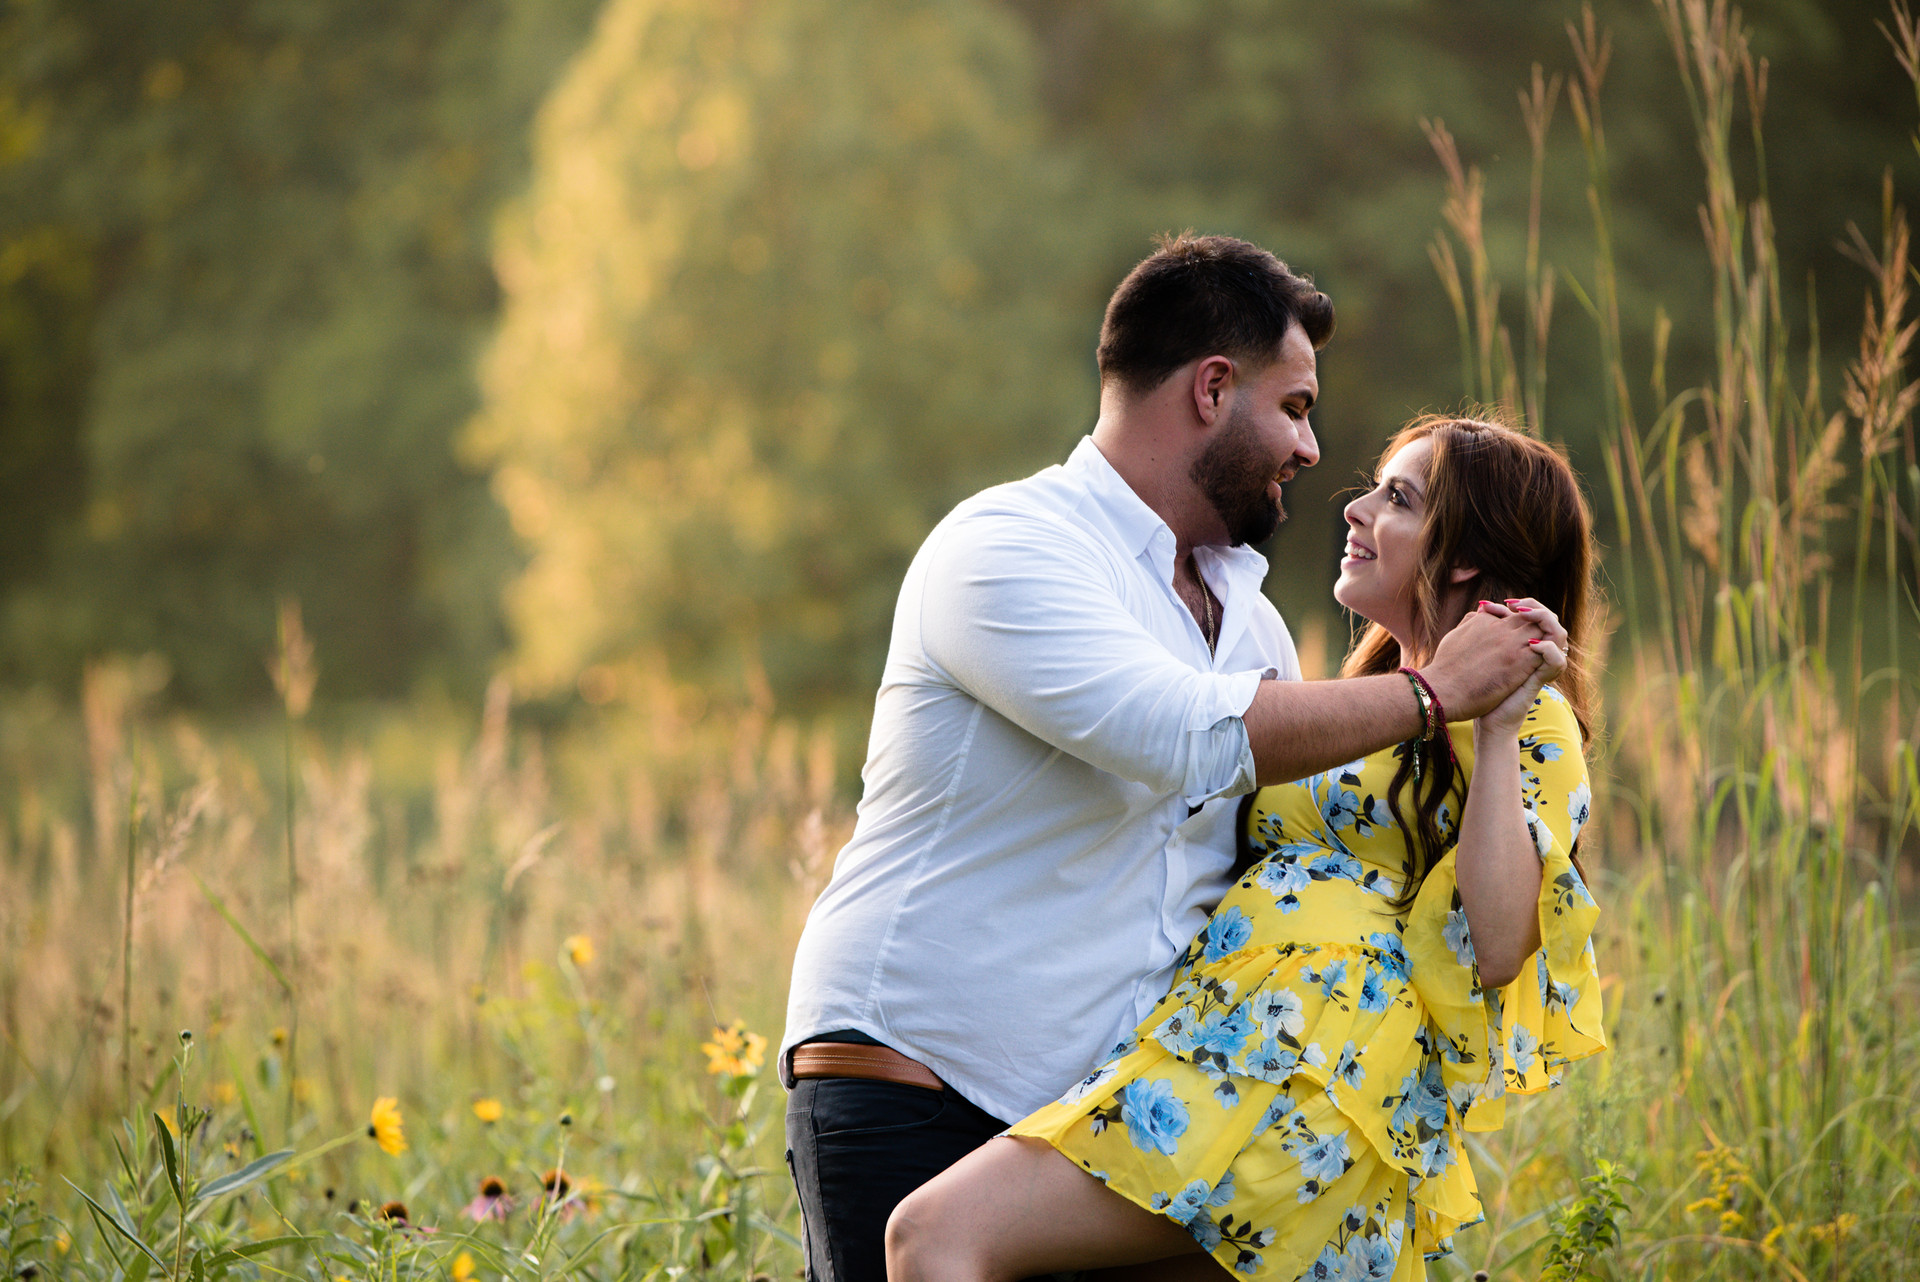 Jessica M. Photography Engagement Photographer Crystal Lake IL